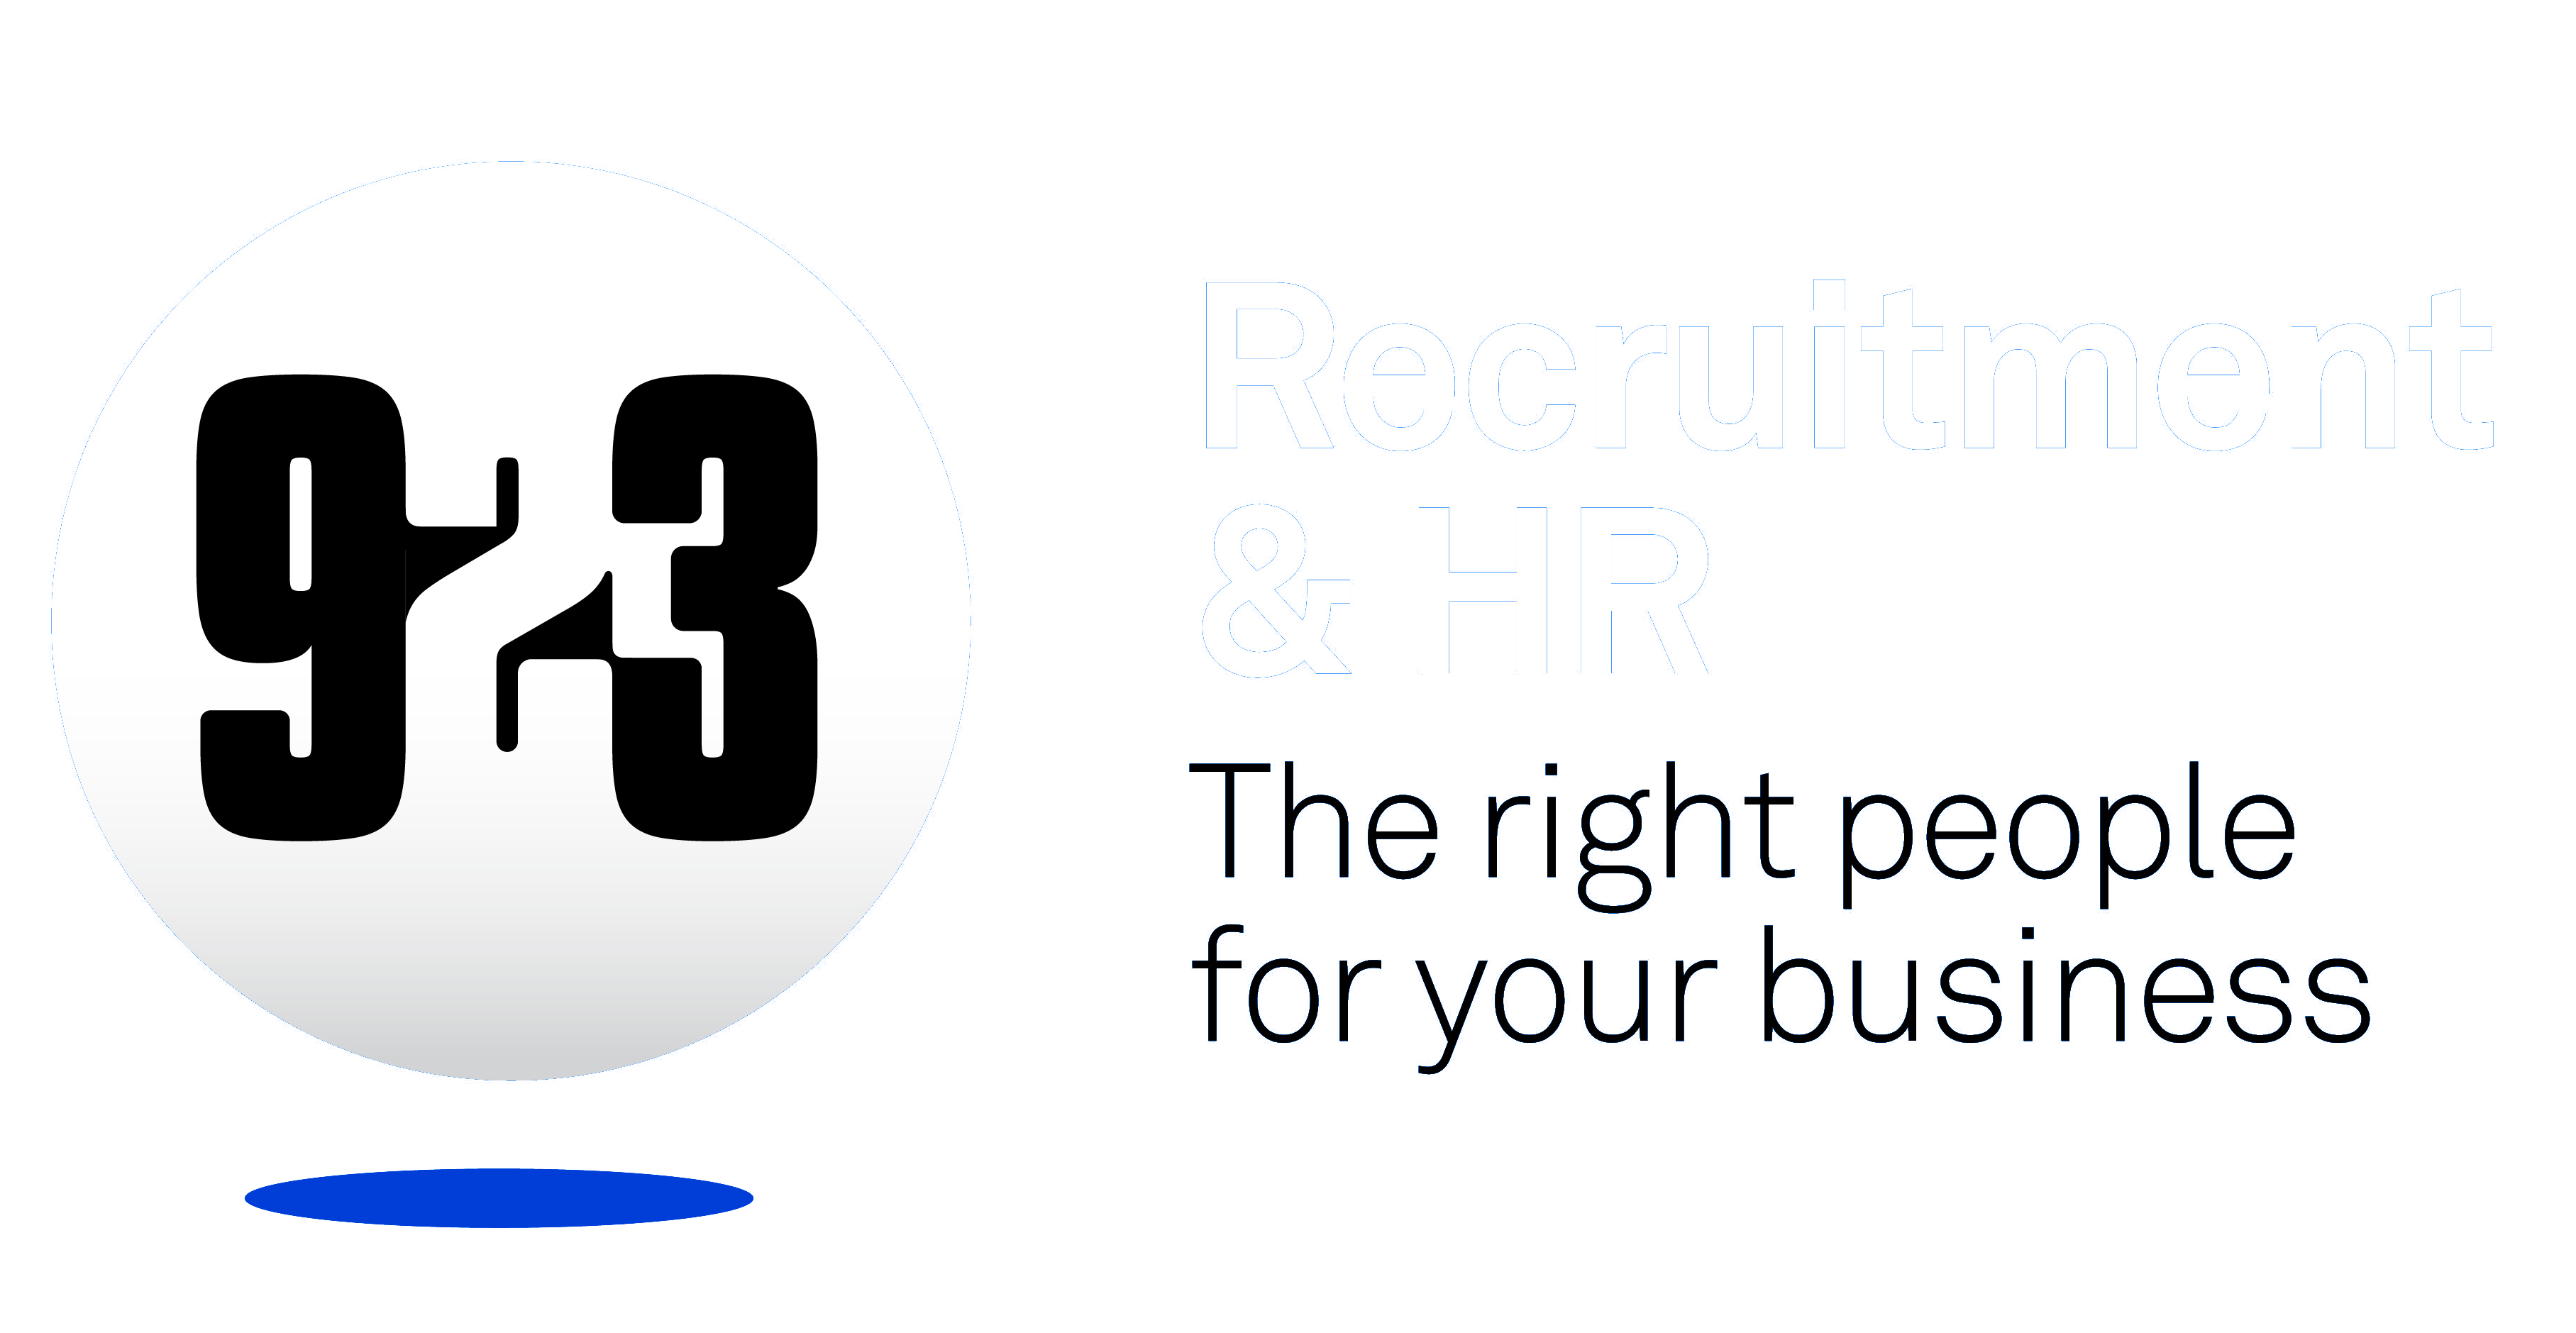 923|Recruitment & HR